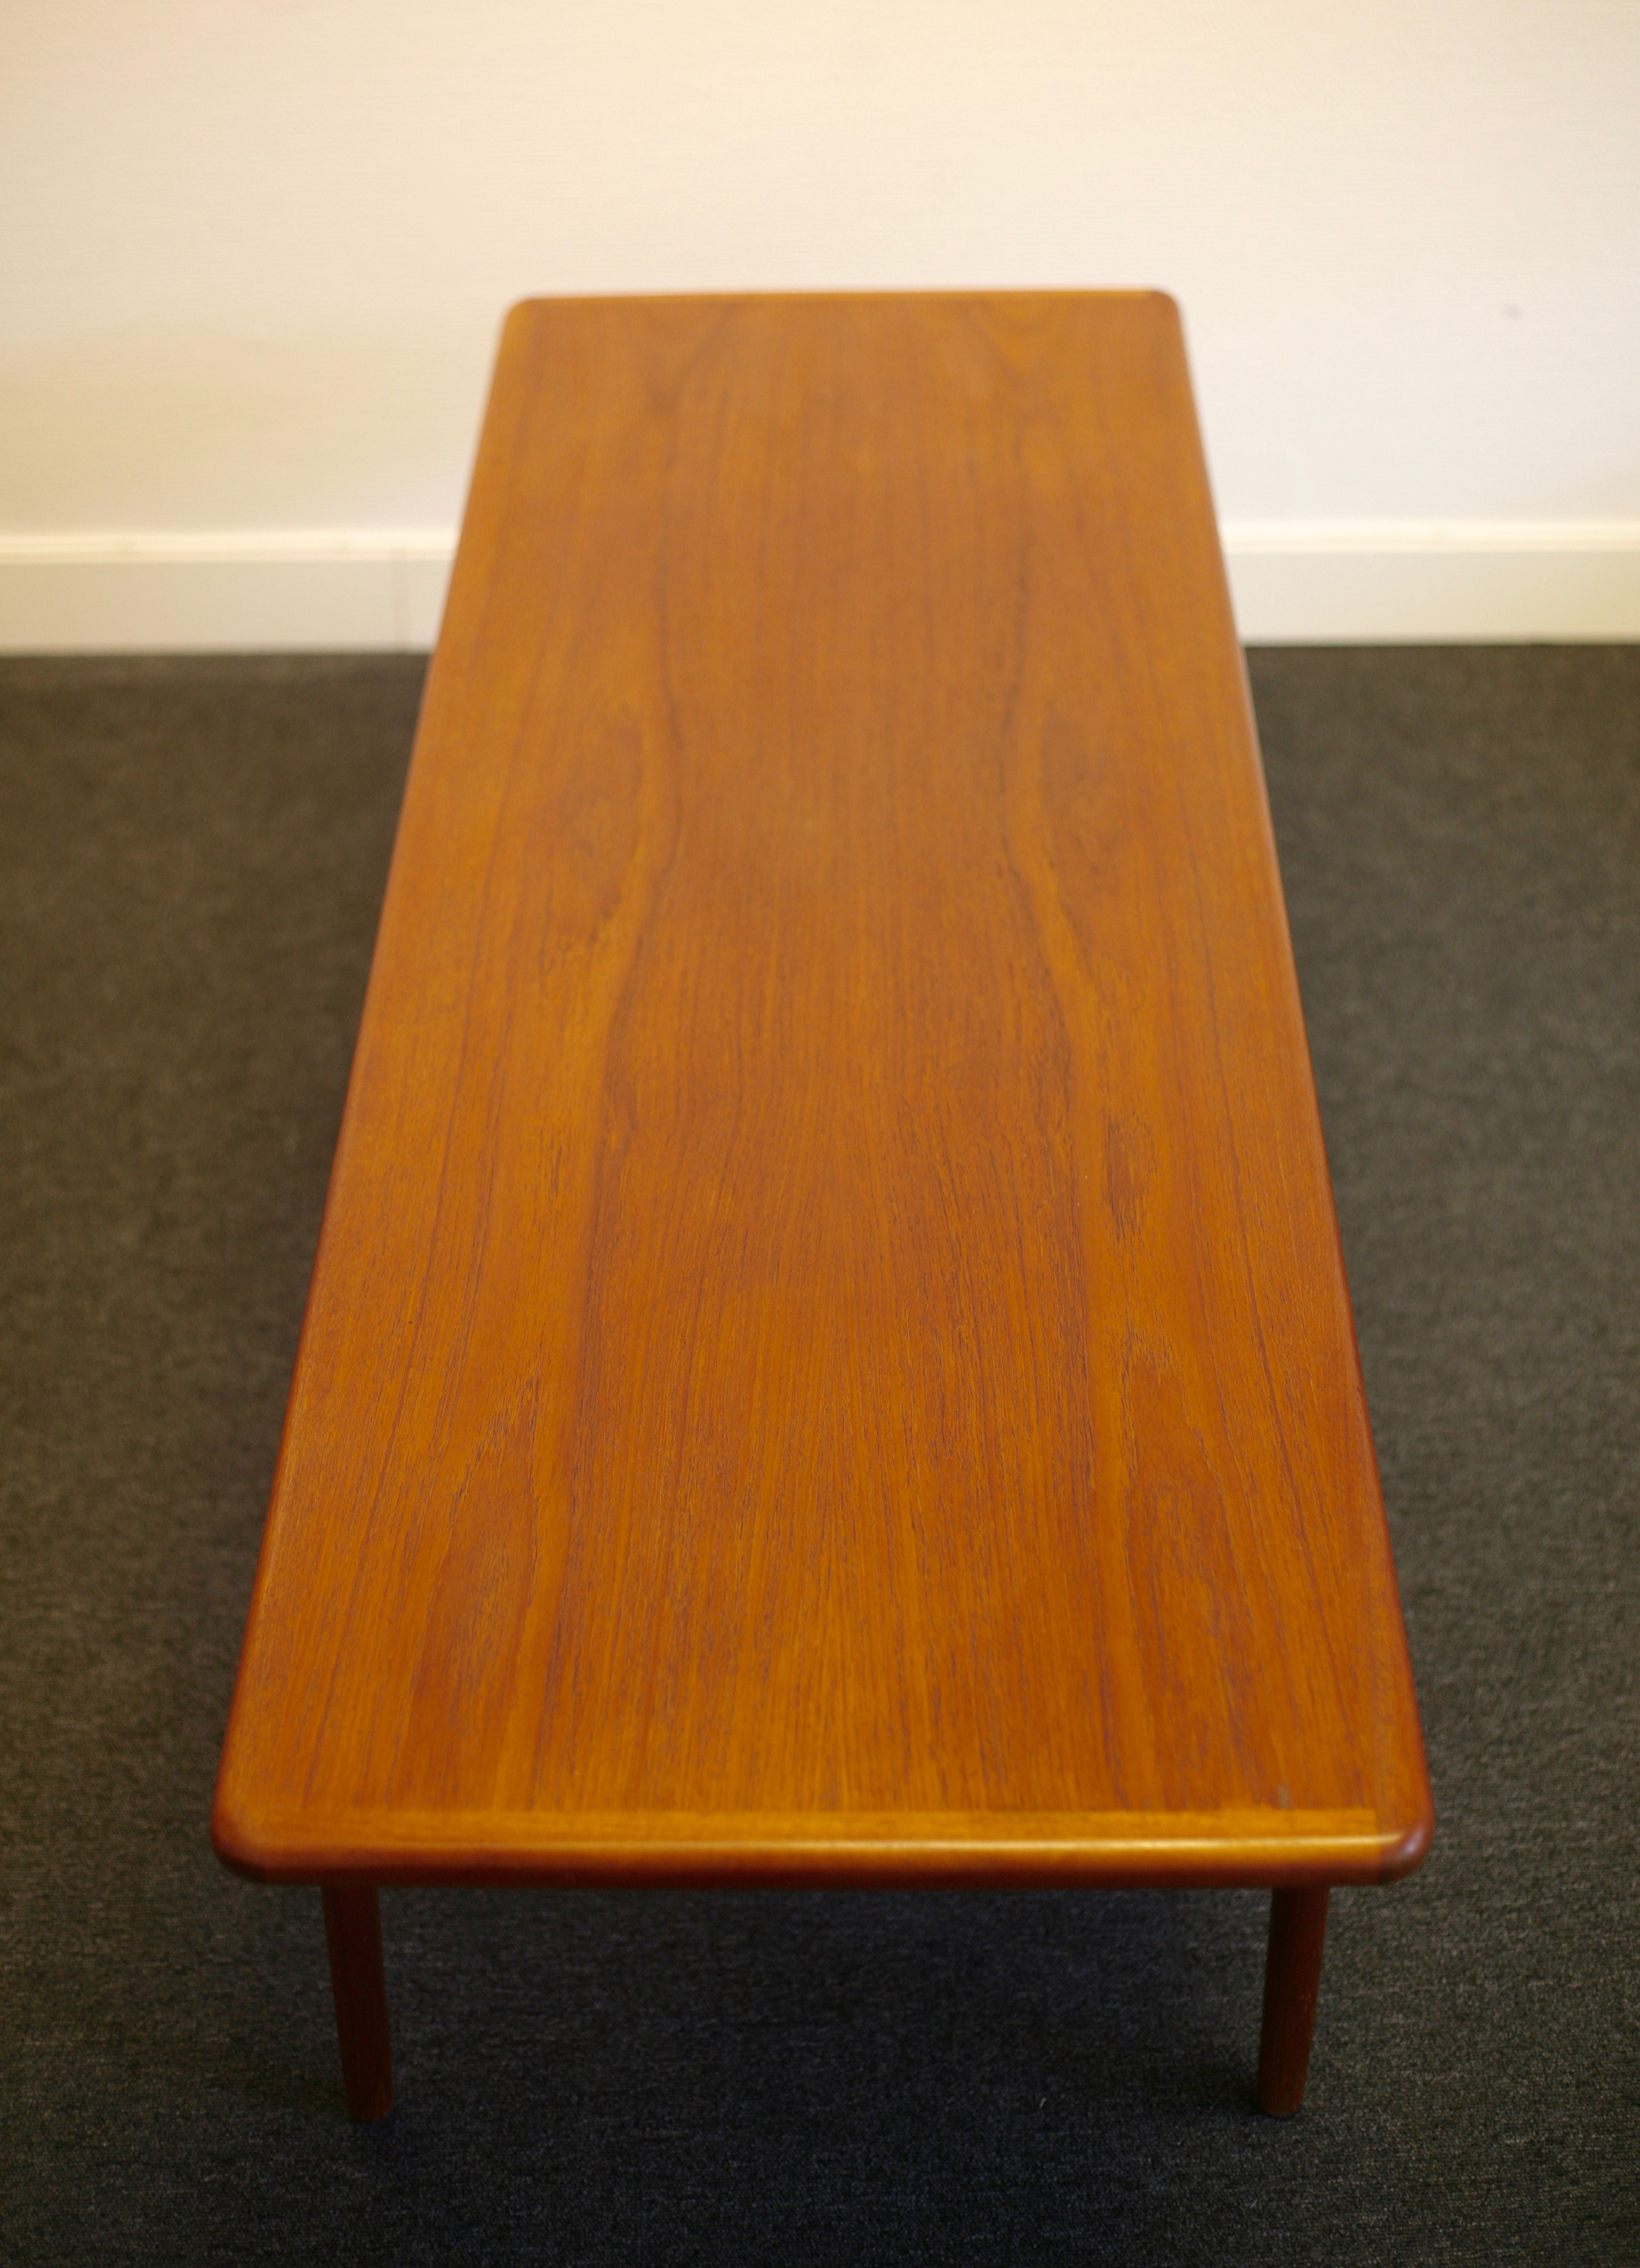 Rare coffee table by Johannes Andersen for CFC